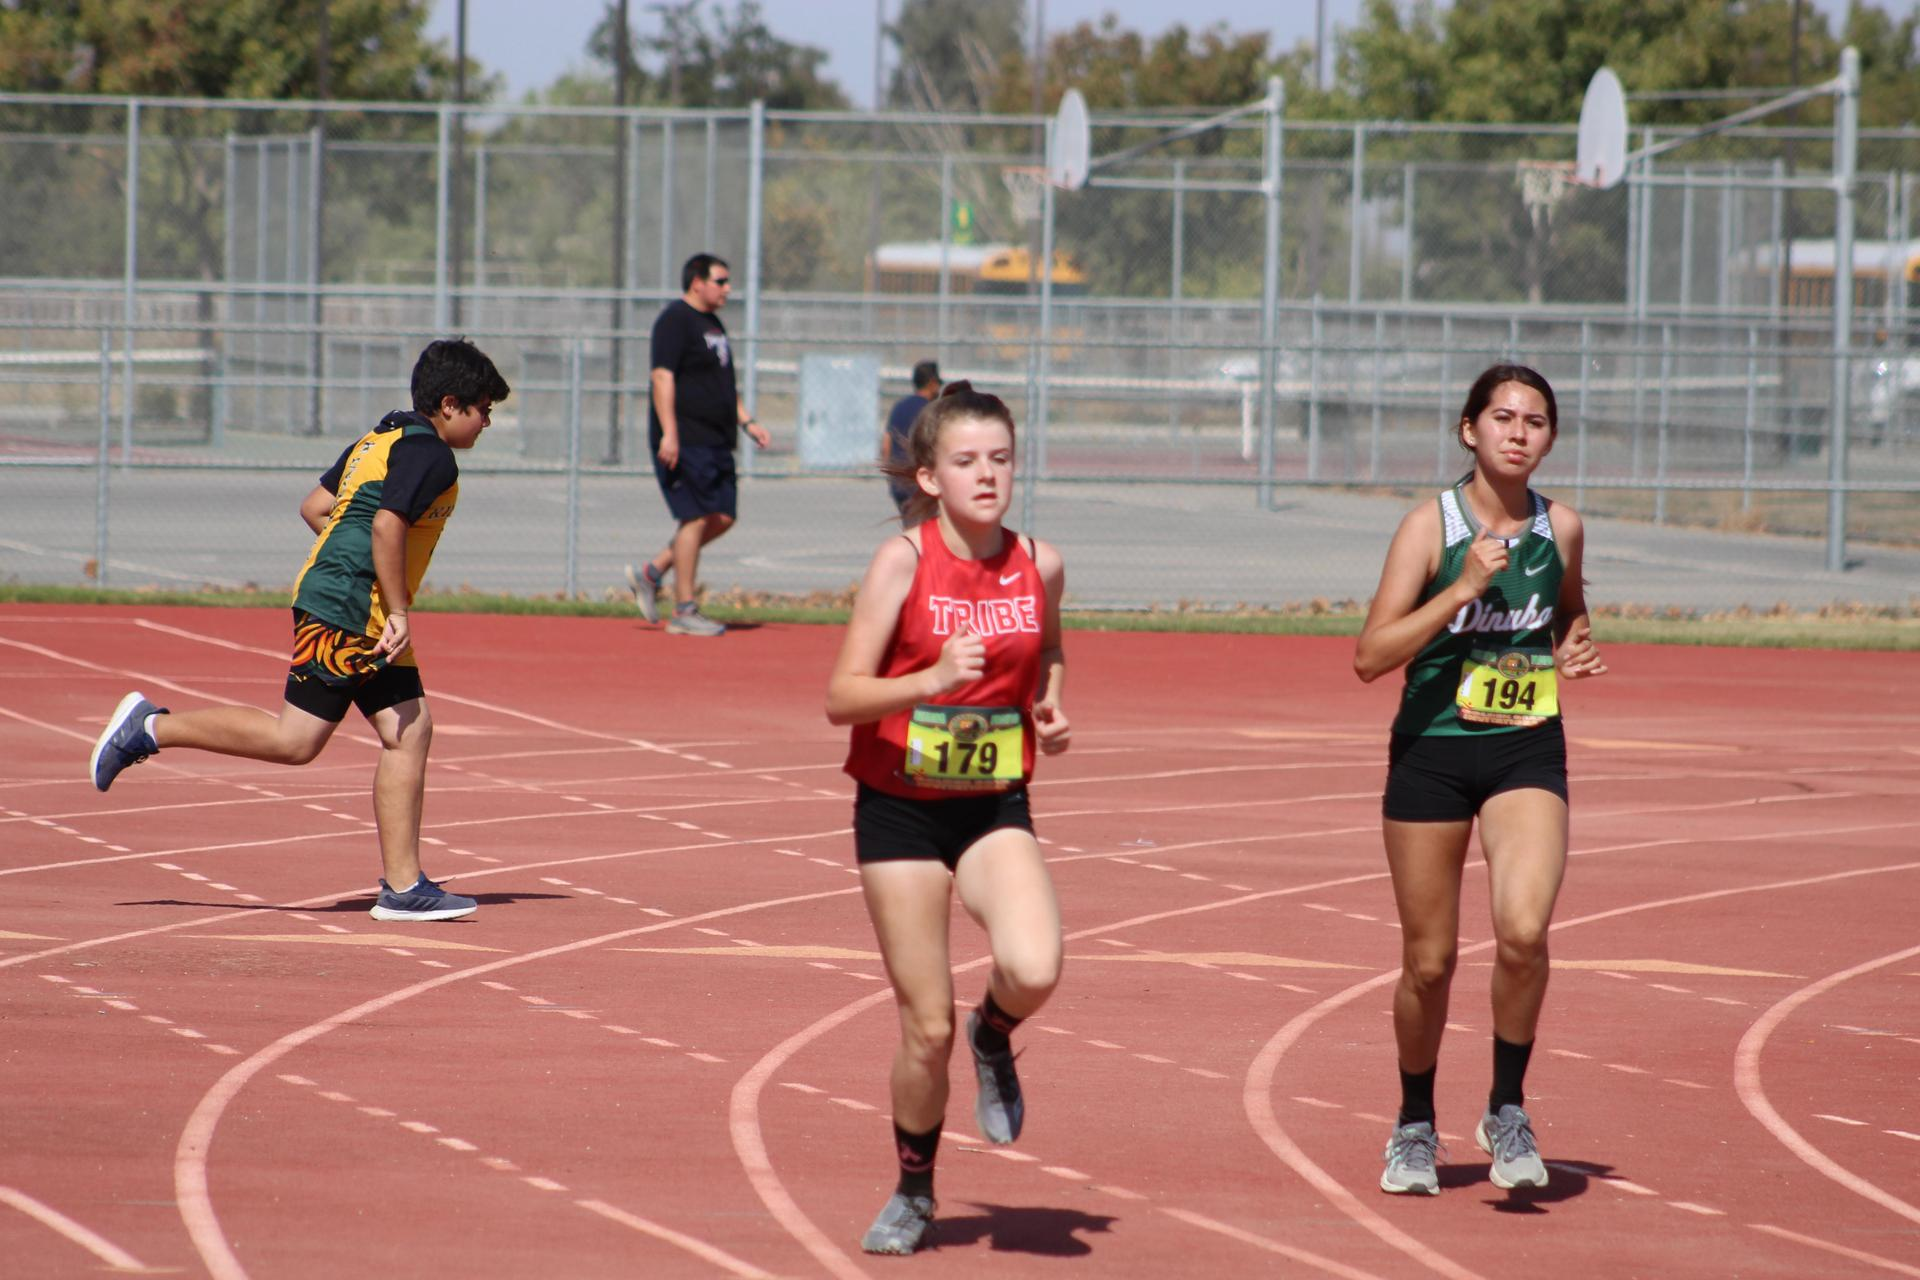 Girls Cross Country Running at Sierra Pacific